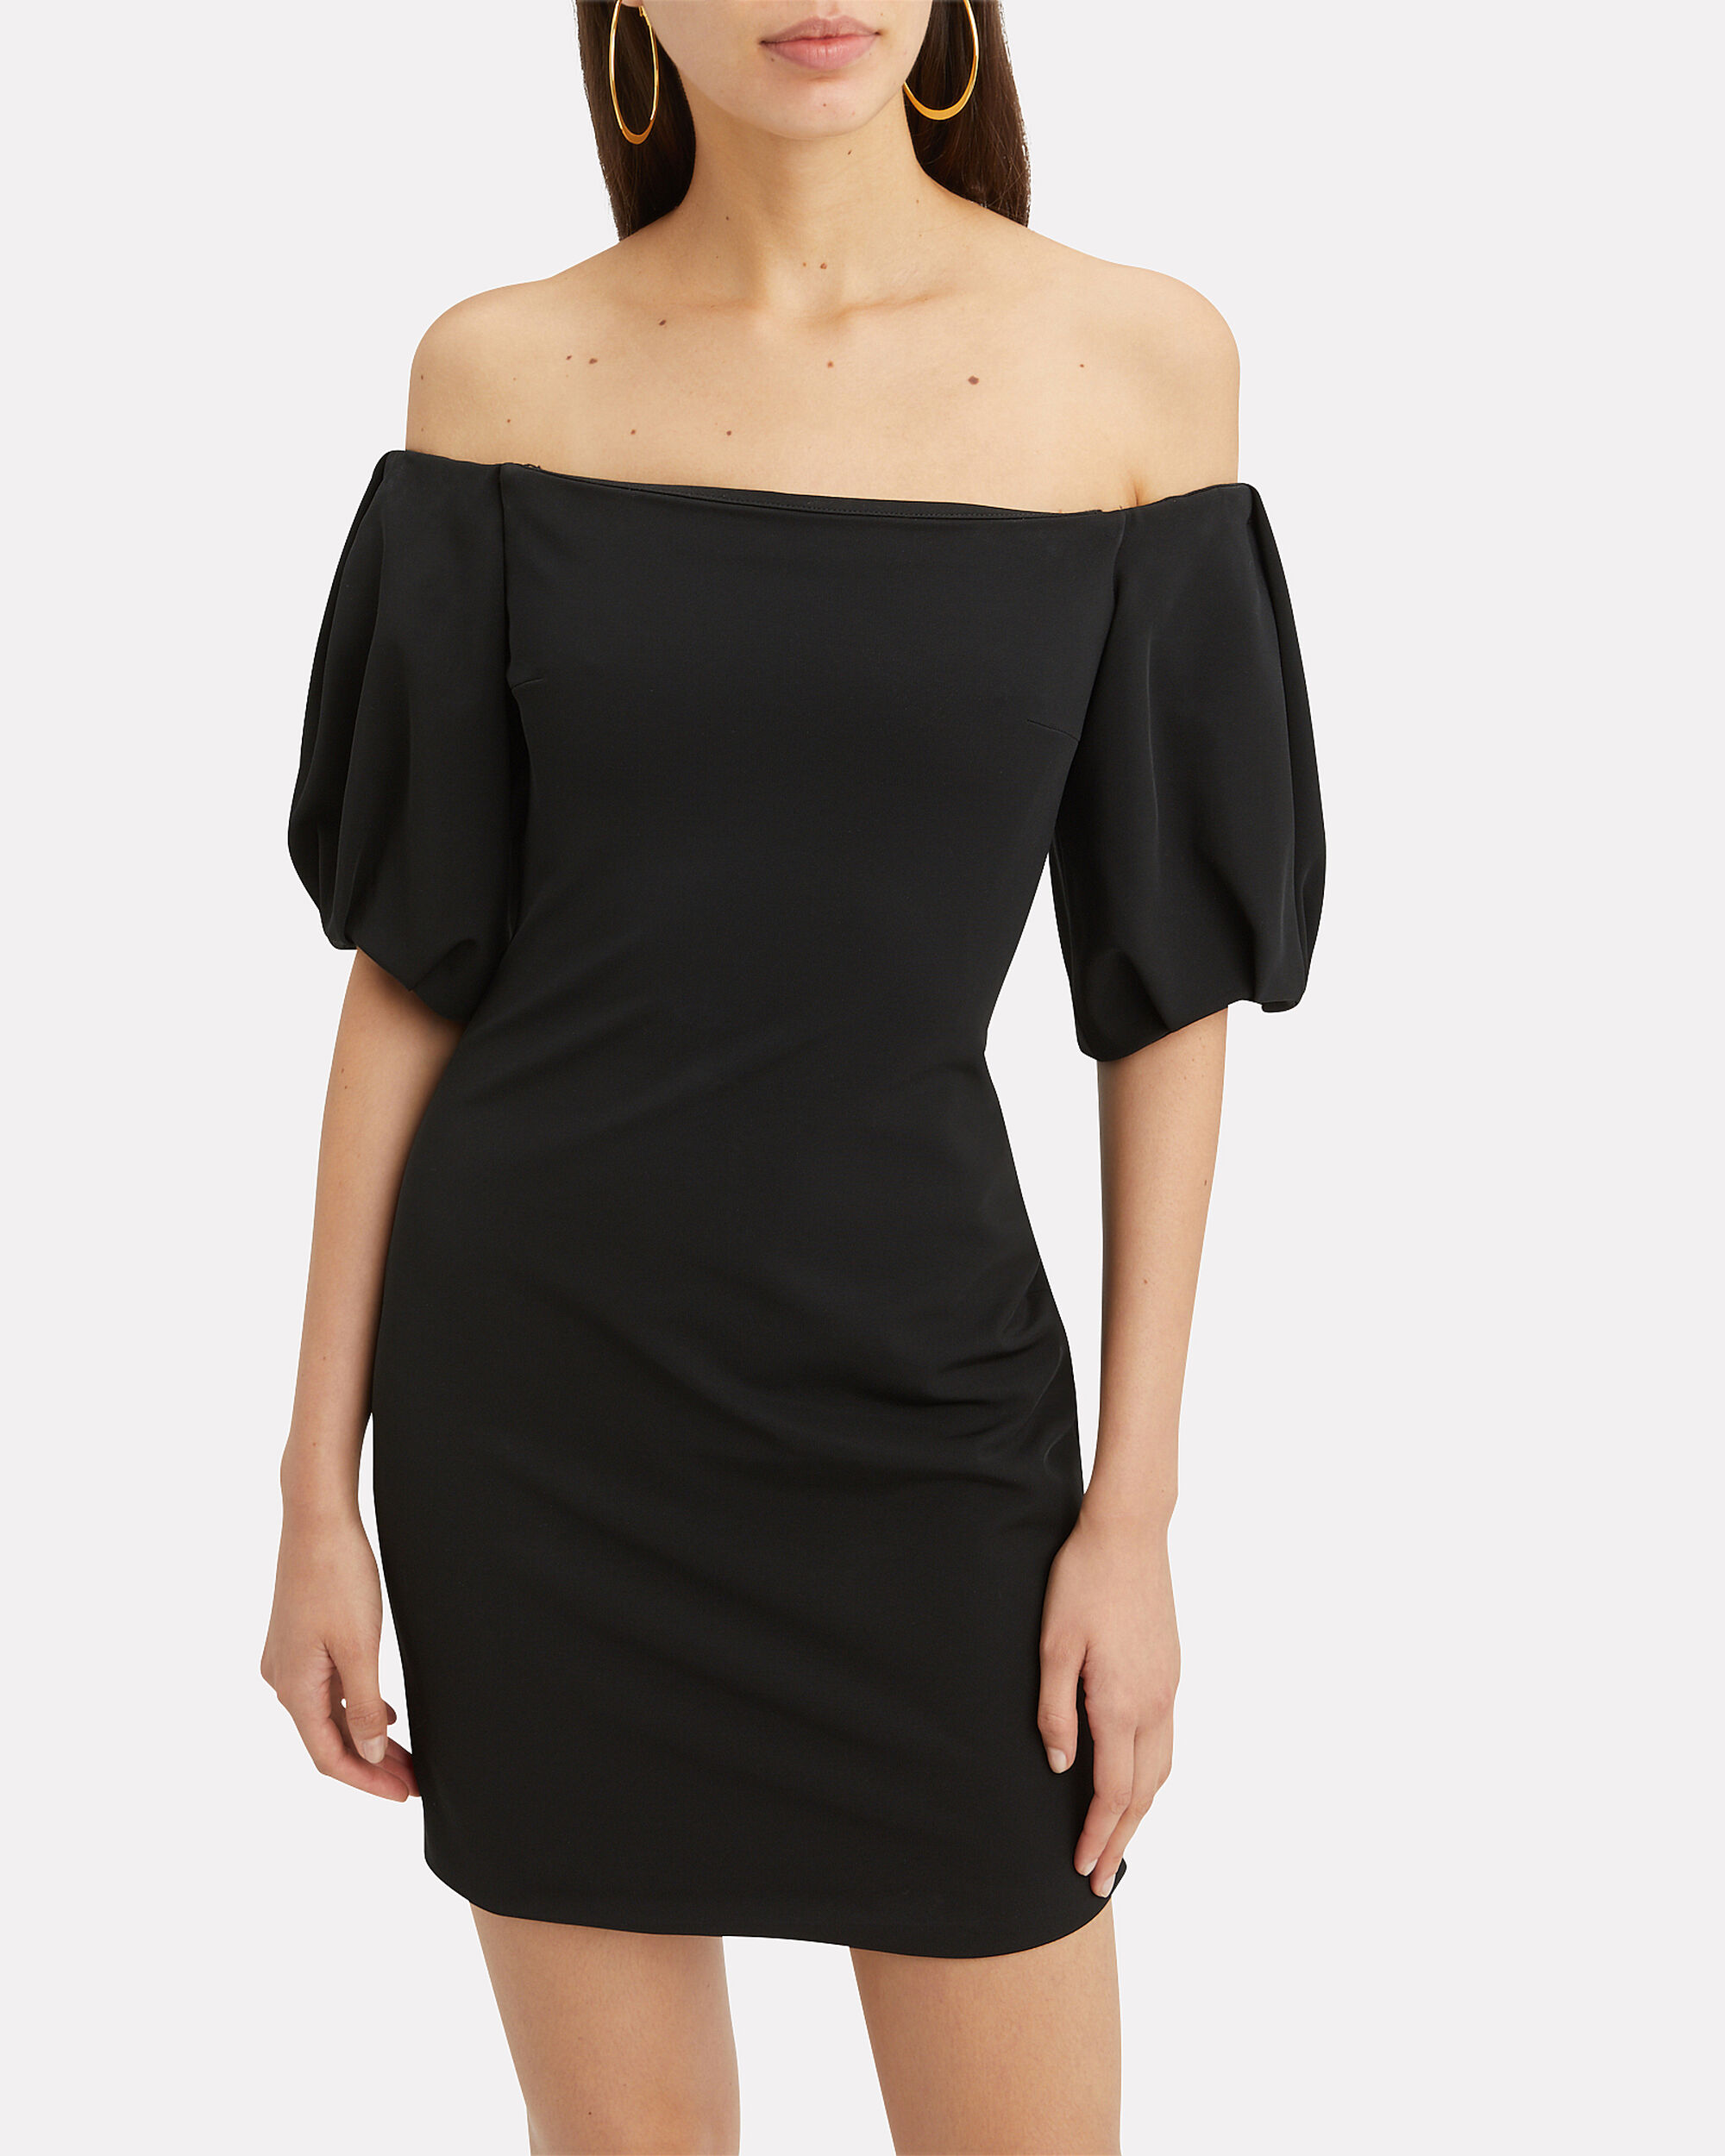 Silvia Puff-Sleeved Black Mini Dress, BLACK, hi-res